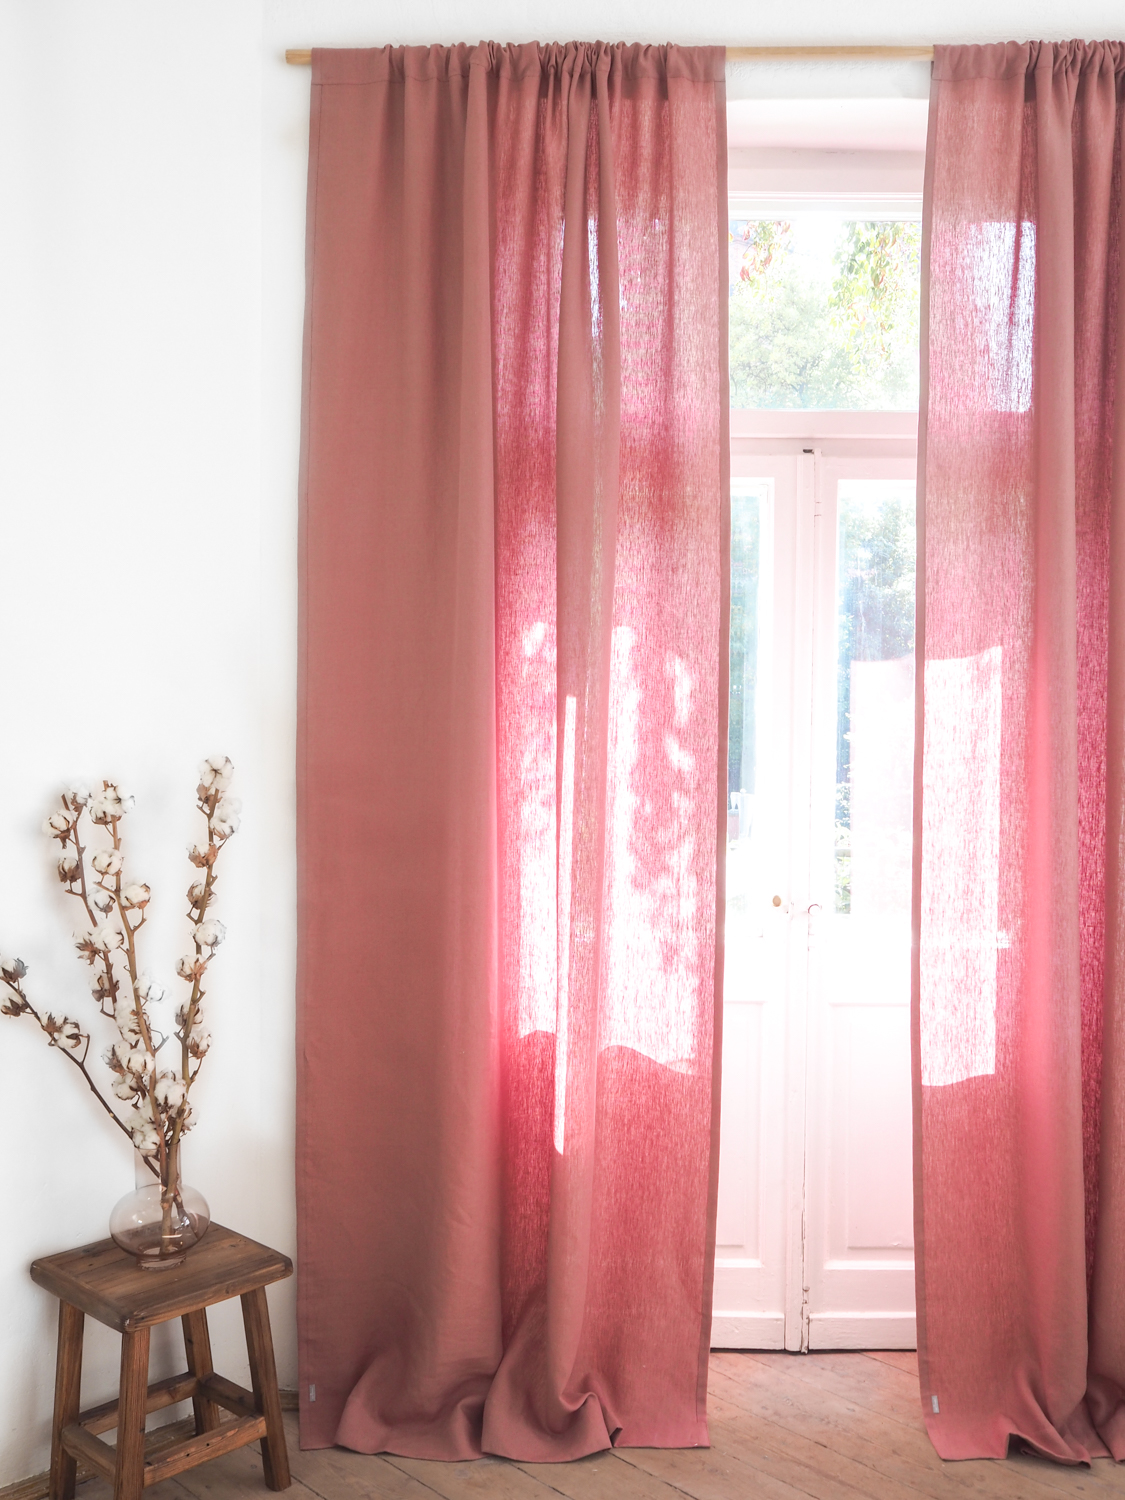 Pink curtains made of heavy linen